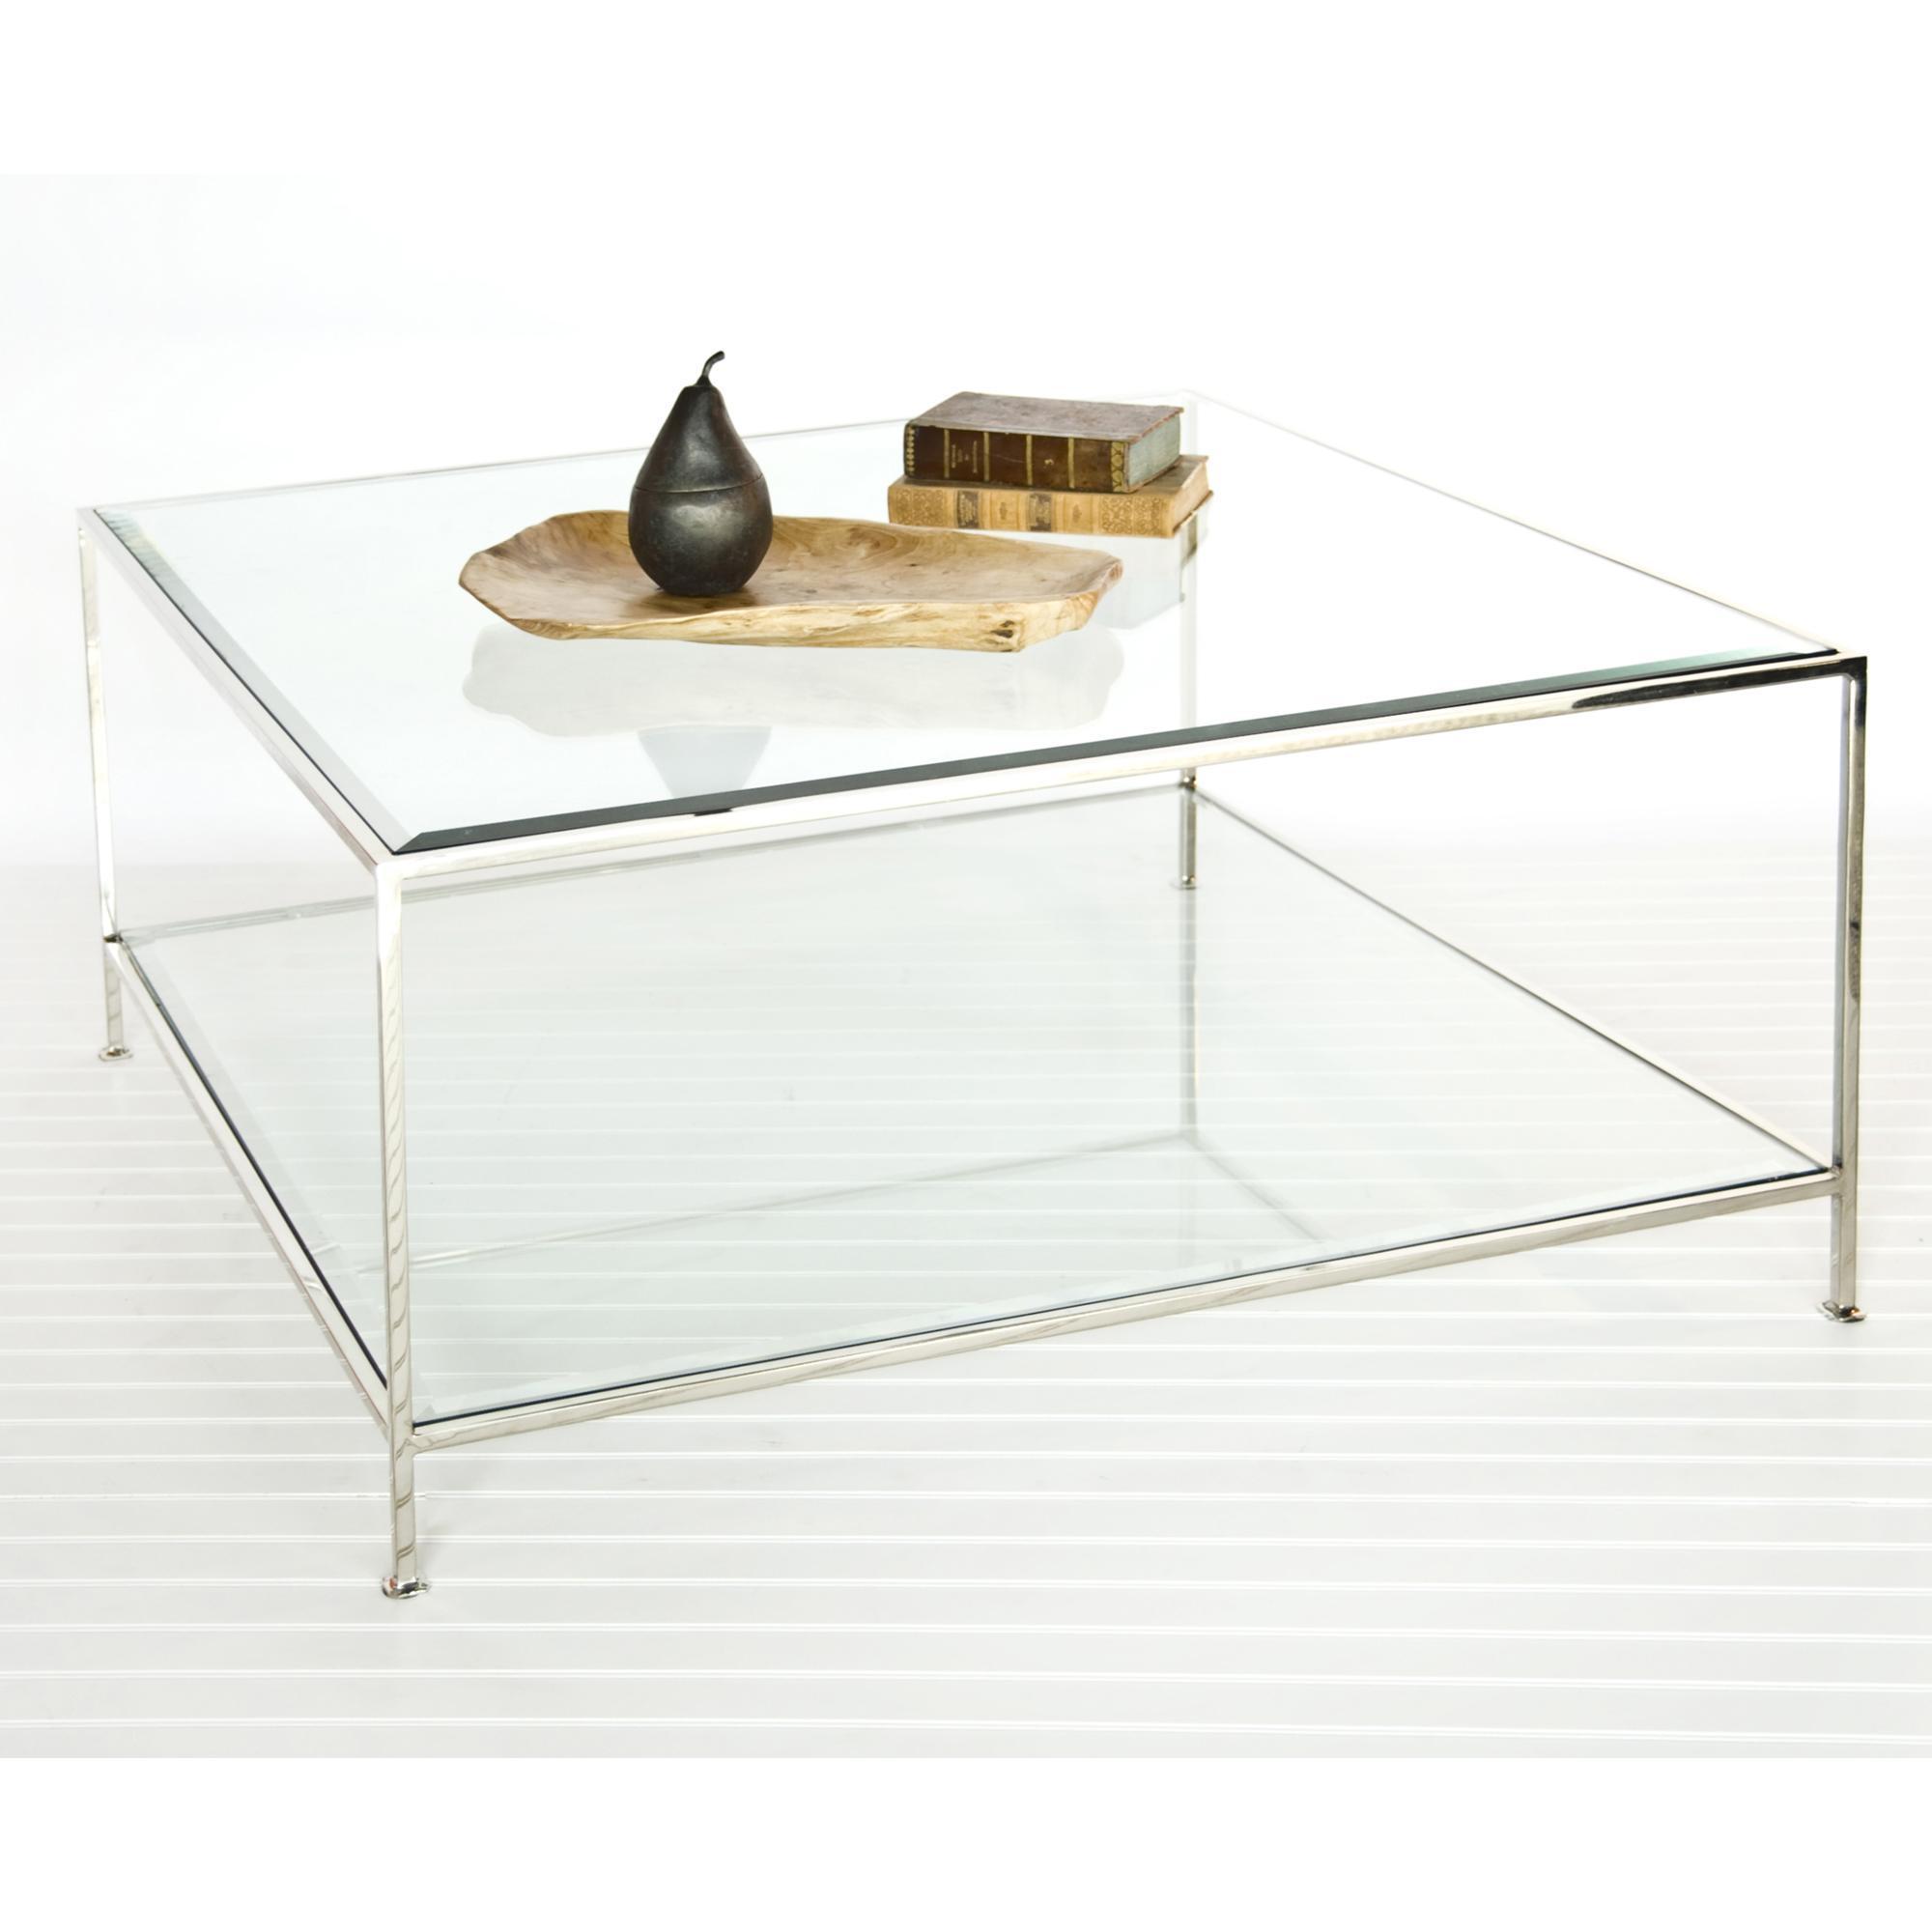 Square Glass Coffee Tables Contemporary Cocktail Table From Worlds Away Simple Designs (Photo 3 of 10)